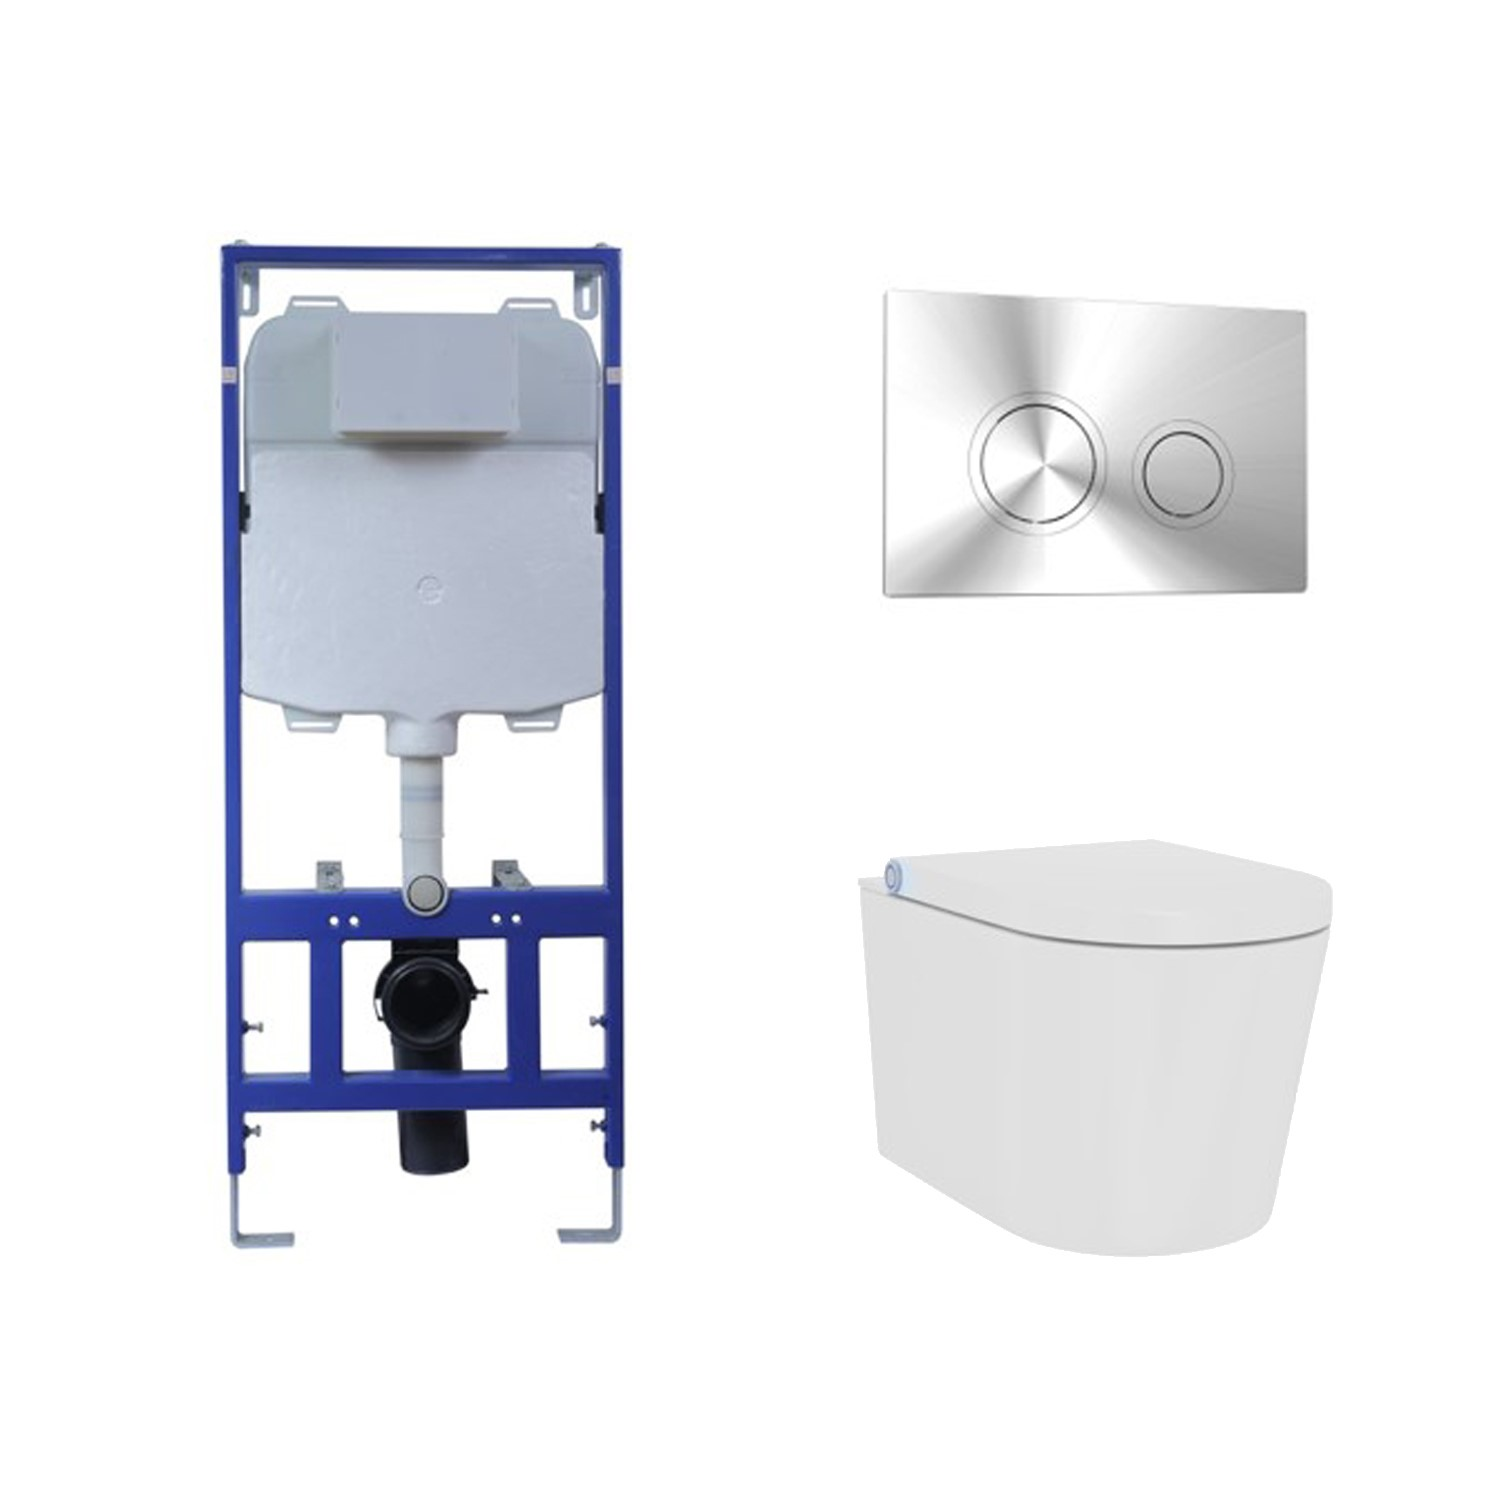 Bath & WC Wall Hung Smart Bidet Toilet Combo with Cistern & Wall Hung Frame - Built in Dryer & Spray - Purificare